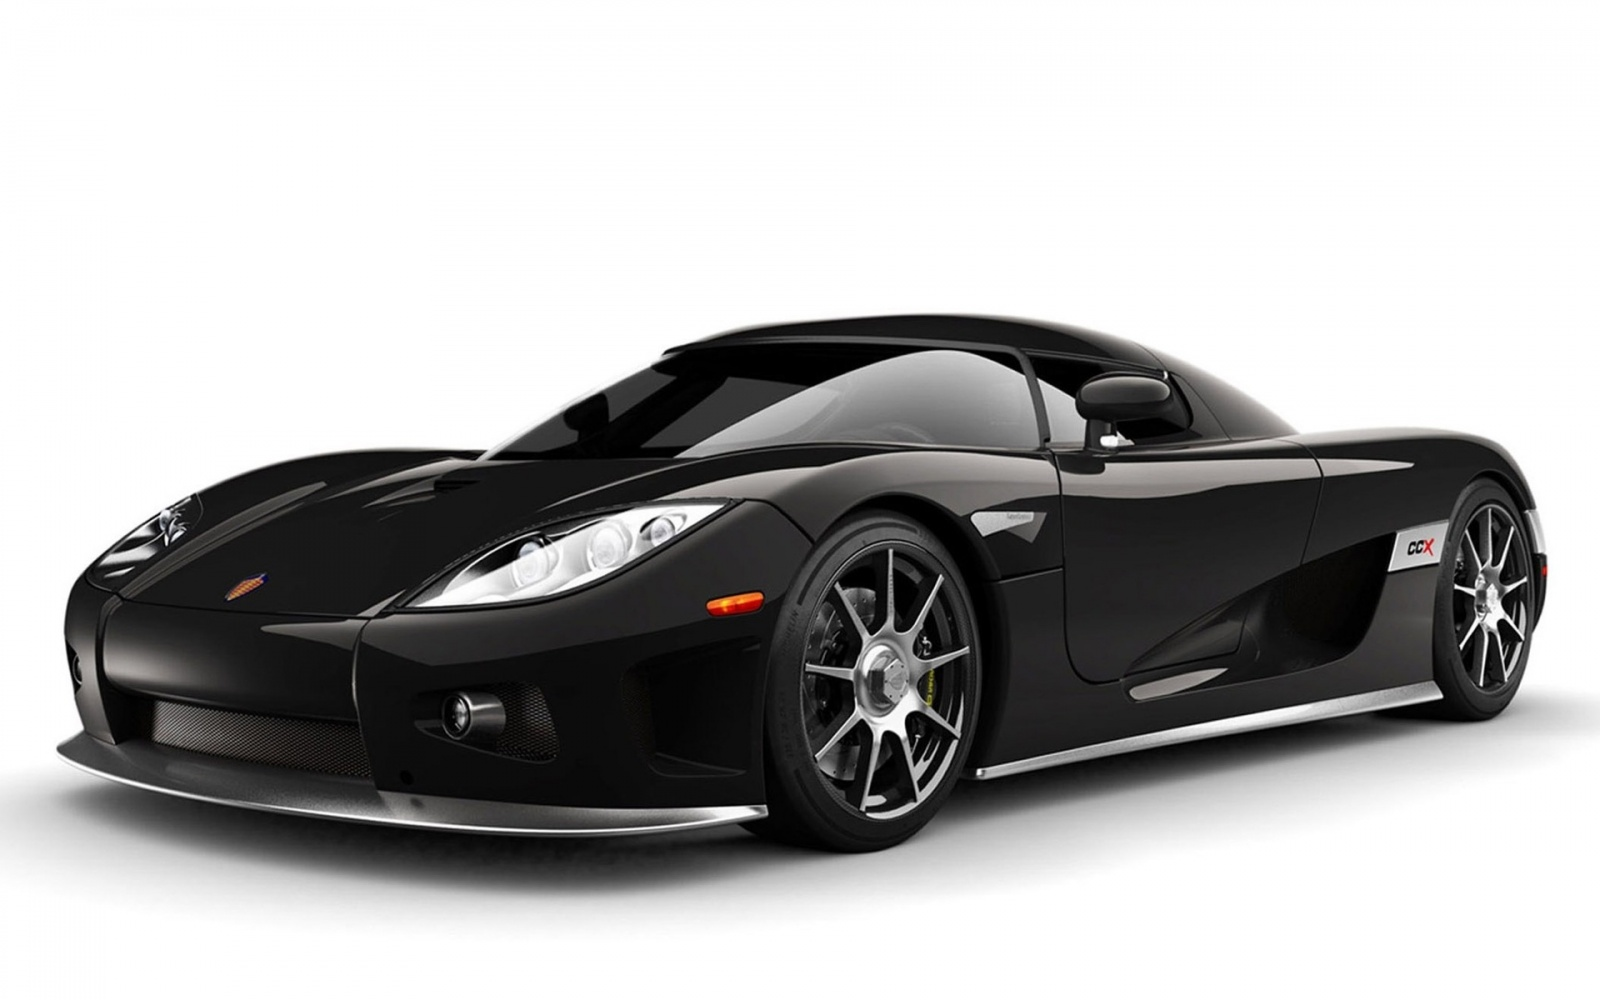 Sport Wallpaper Black: Pictures Of Cars Hd